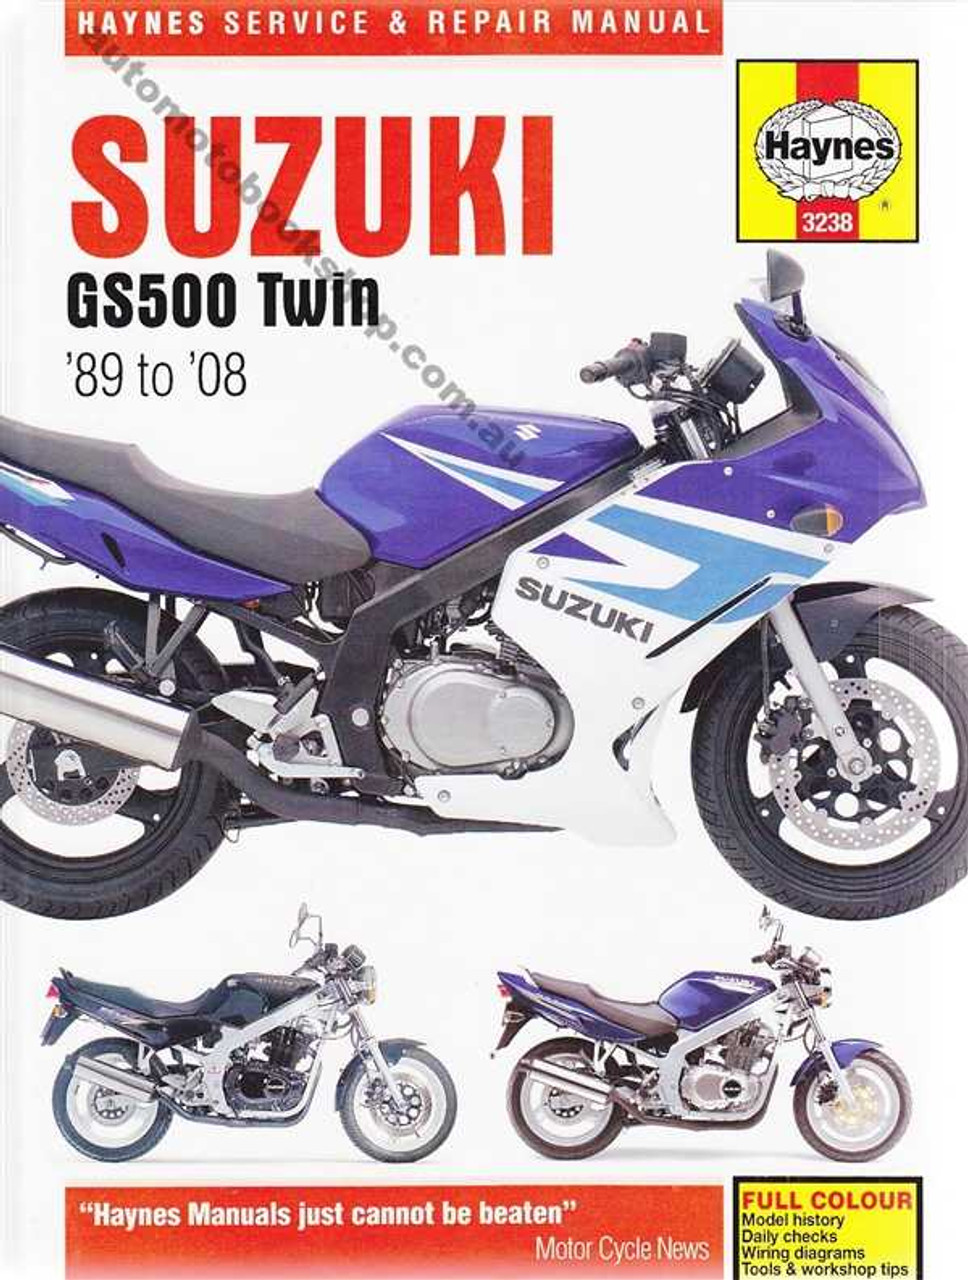 Gs500f owners manual.